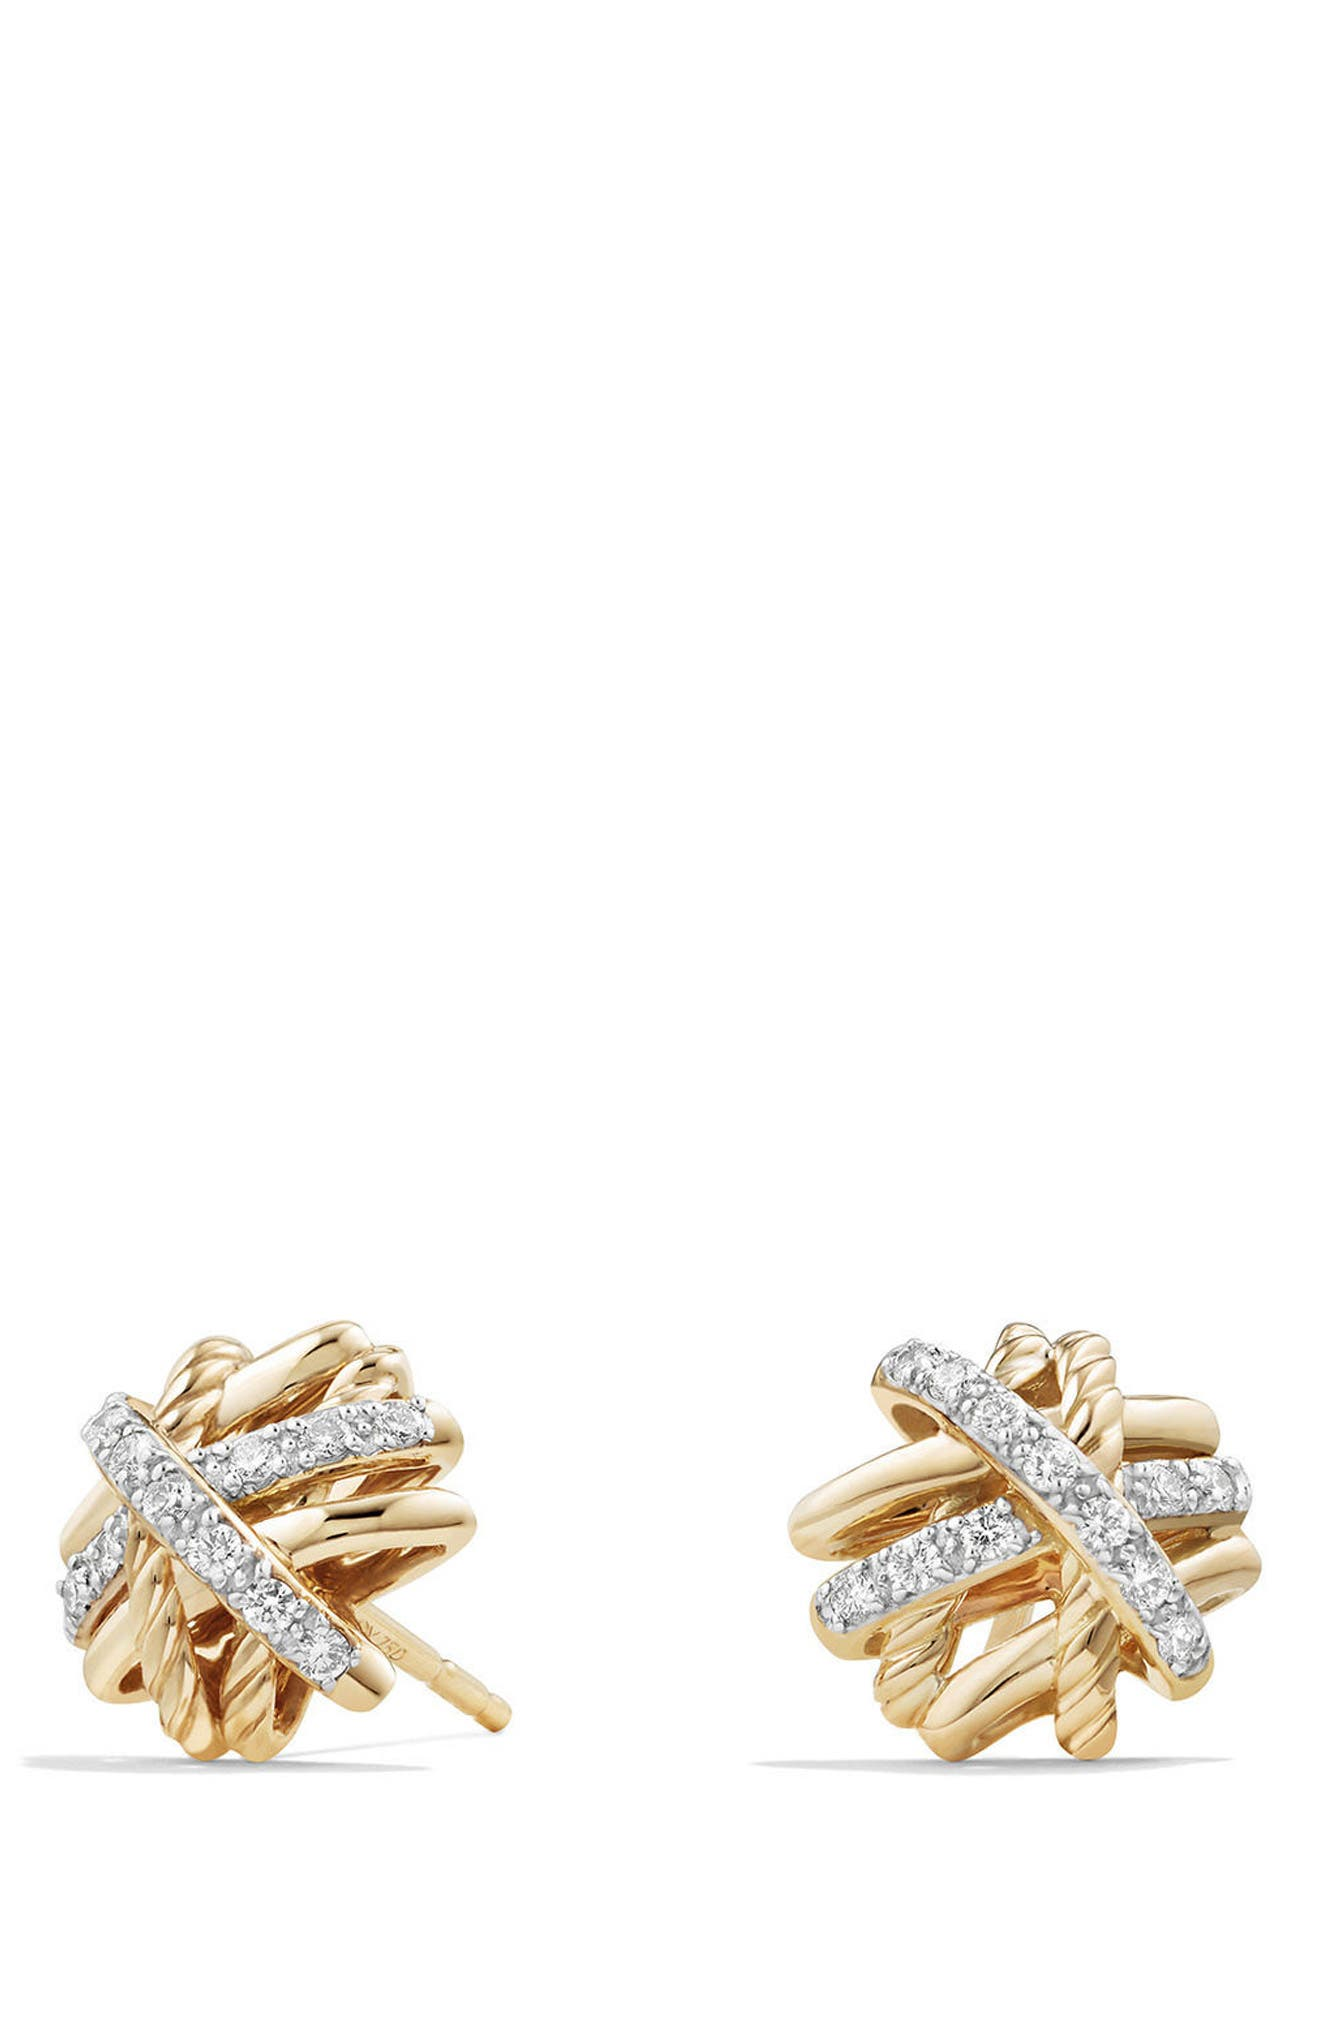 Crossover Stud Earrings with Diamonds in 18k Gold,                         Main,                         color, YELLOW GOLD/ DIAMOND